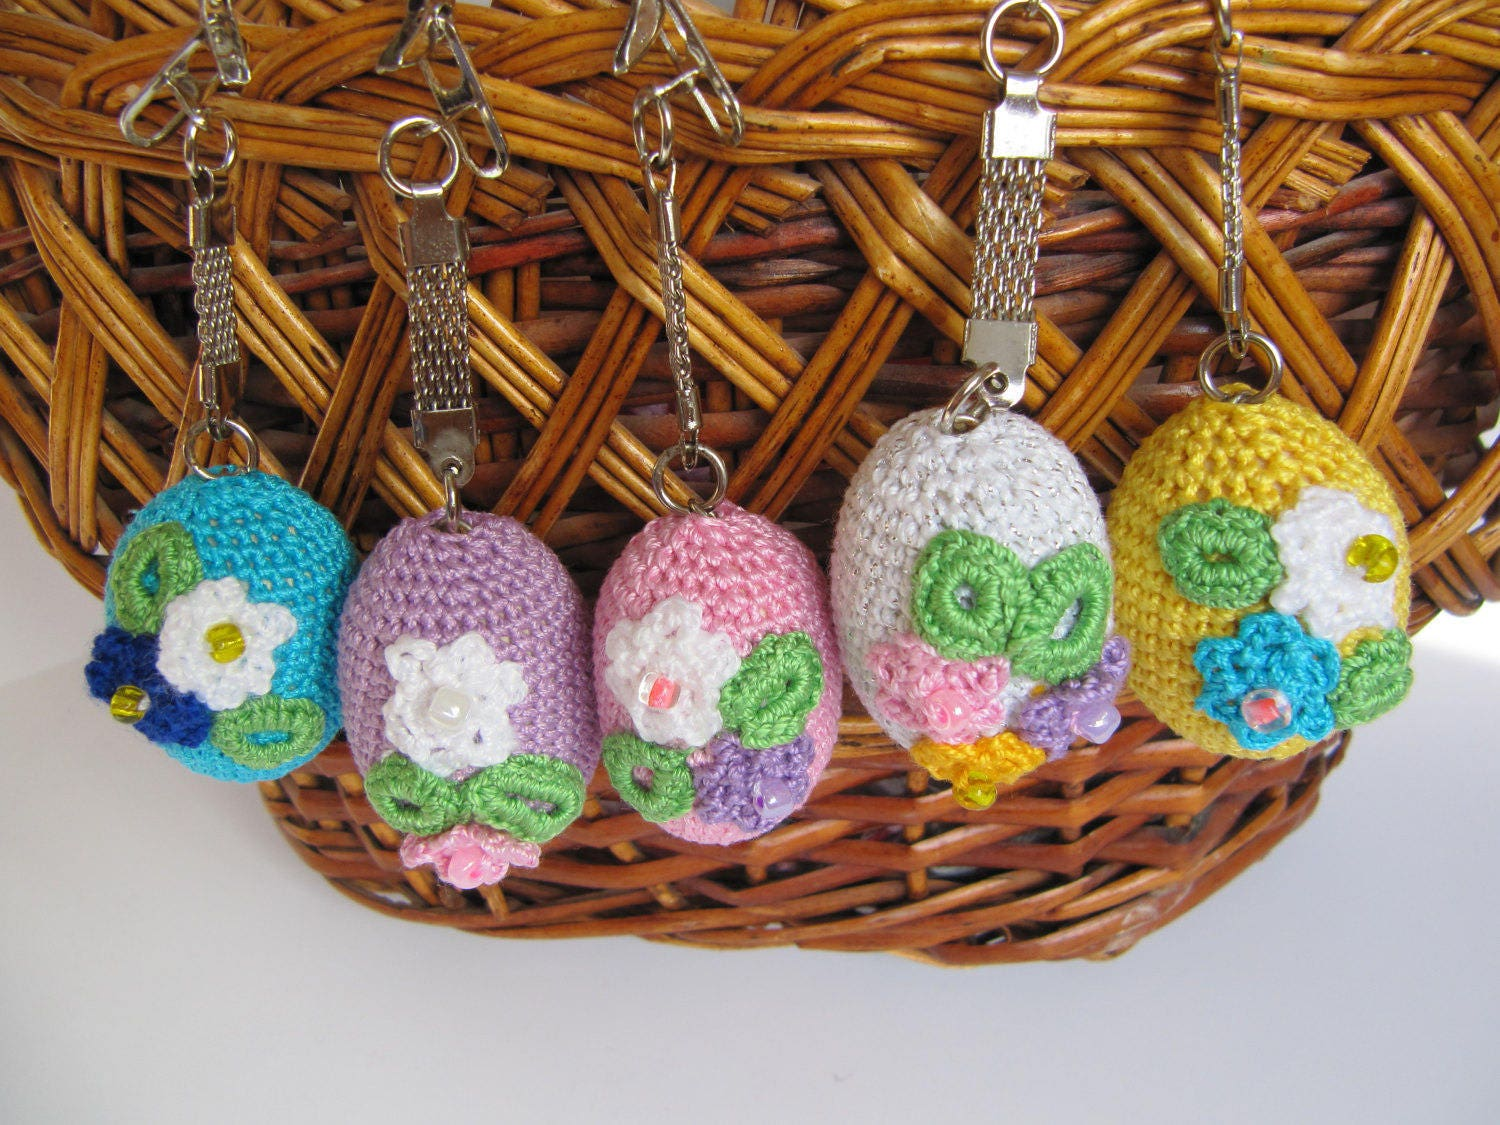 Easter eggs wooden eggs easter keychain easter bag charm easter easter eggs wooden eggs easter keychain easter bag charm easter gift coworker easter gift girlfriend organic negle Gallery